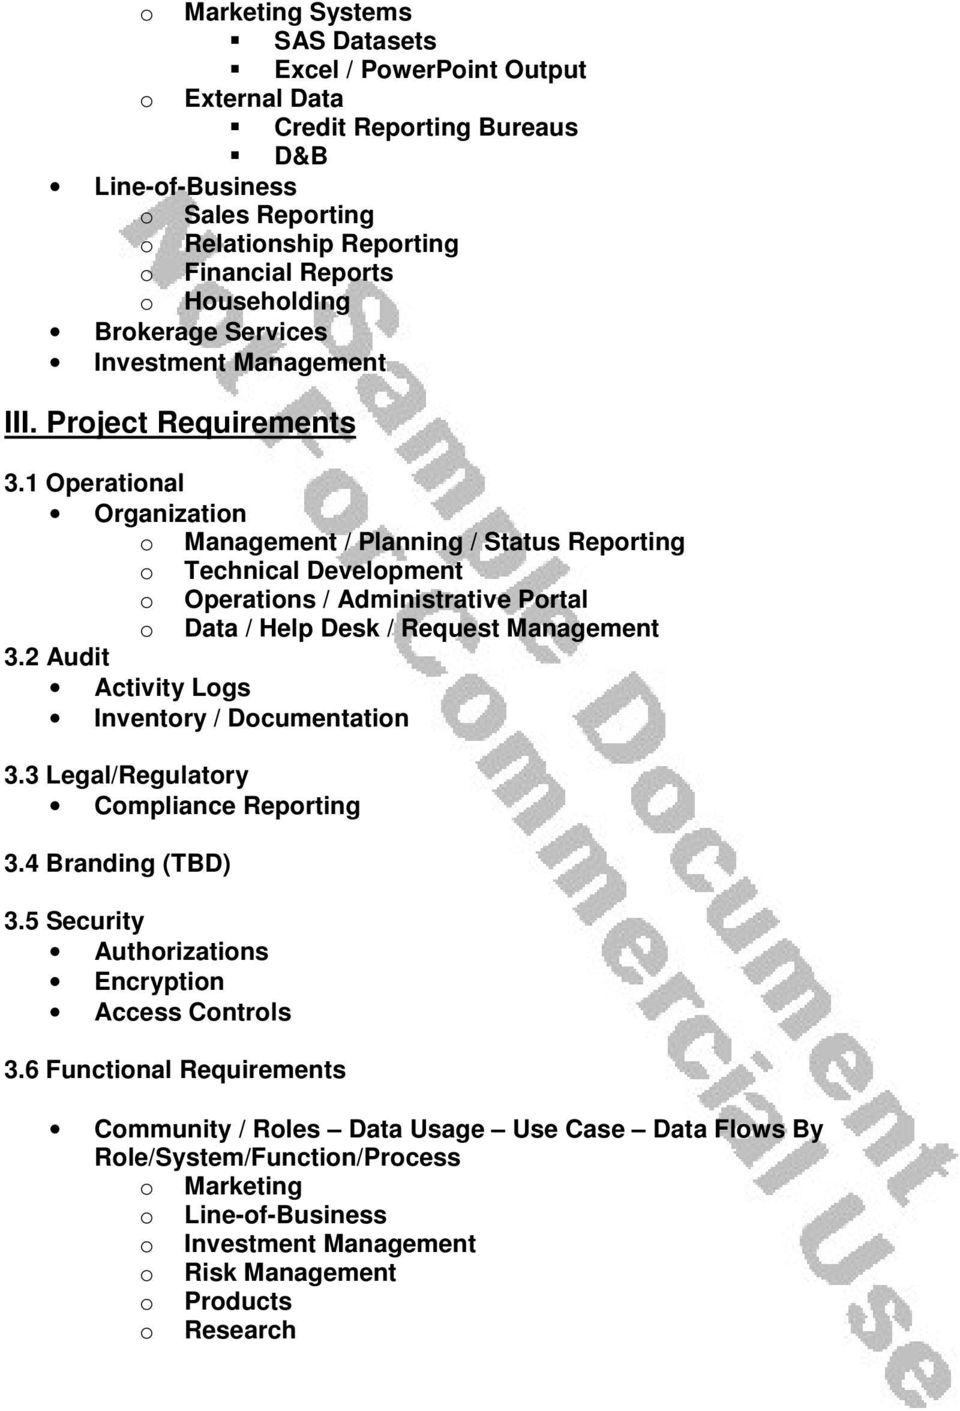 1 Operational Organization o Management / Planning / Status Reporting o Technical Development o Operations / Administrative Portal o Data / Help Desk / Request Management 3.